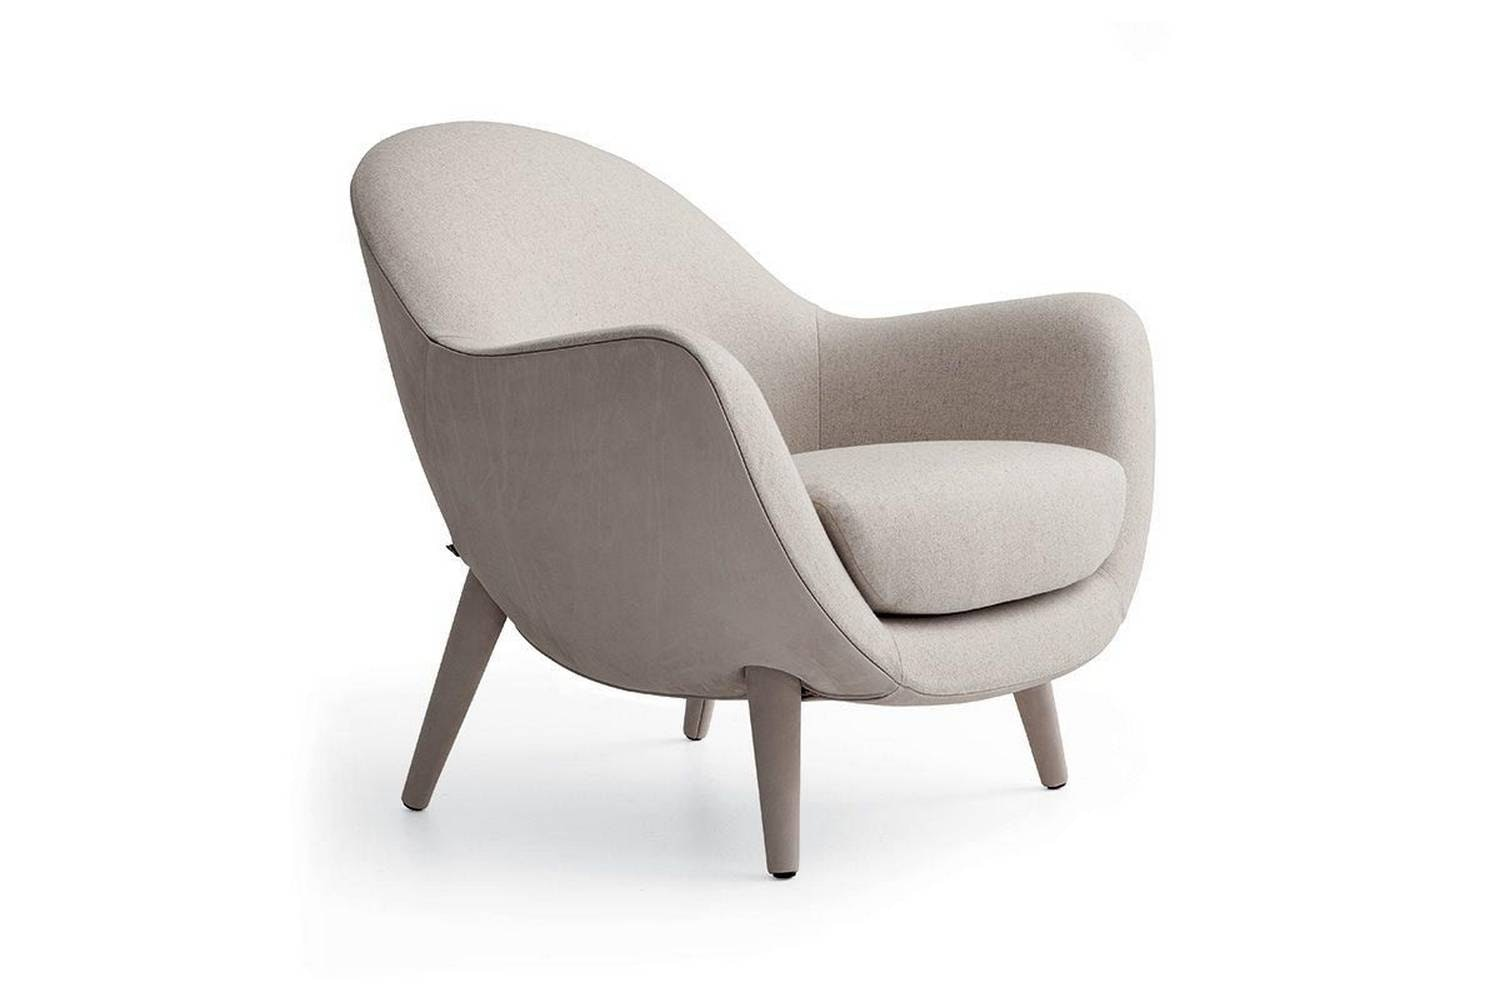 Mad Queen Armchair by Marcel Wanders for Poliform